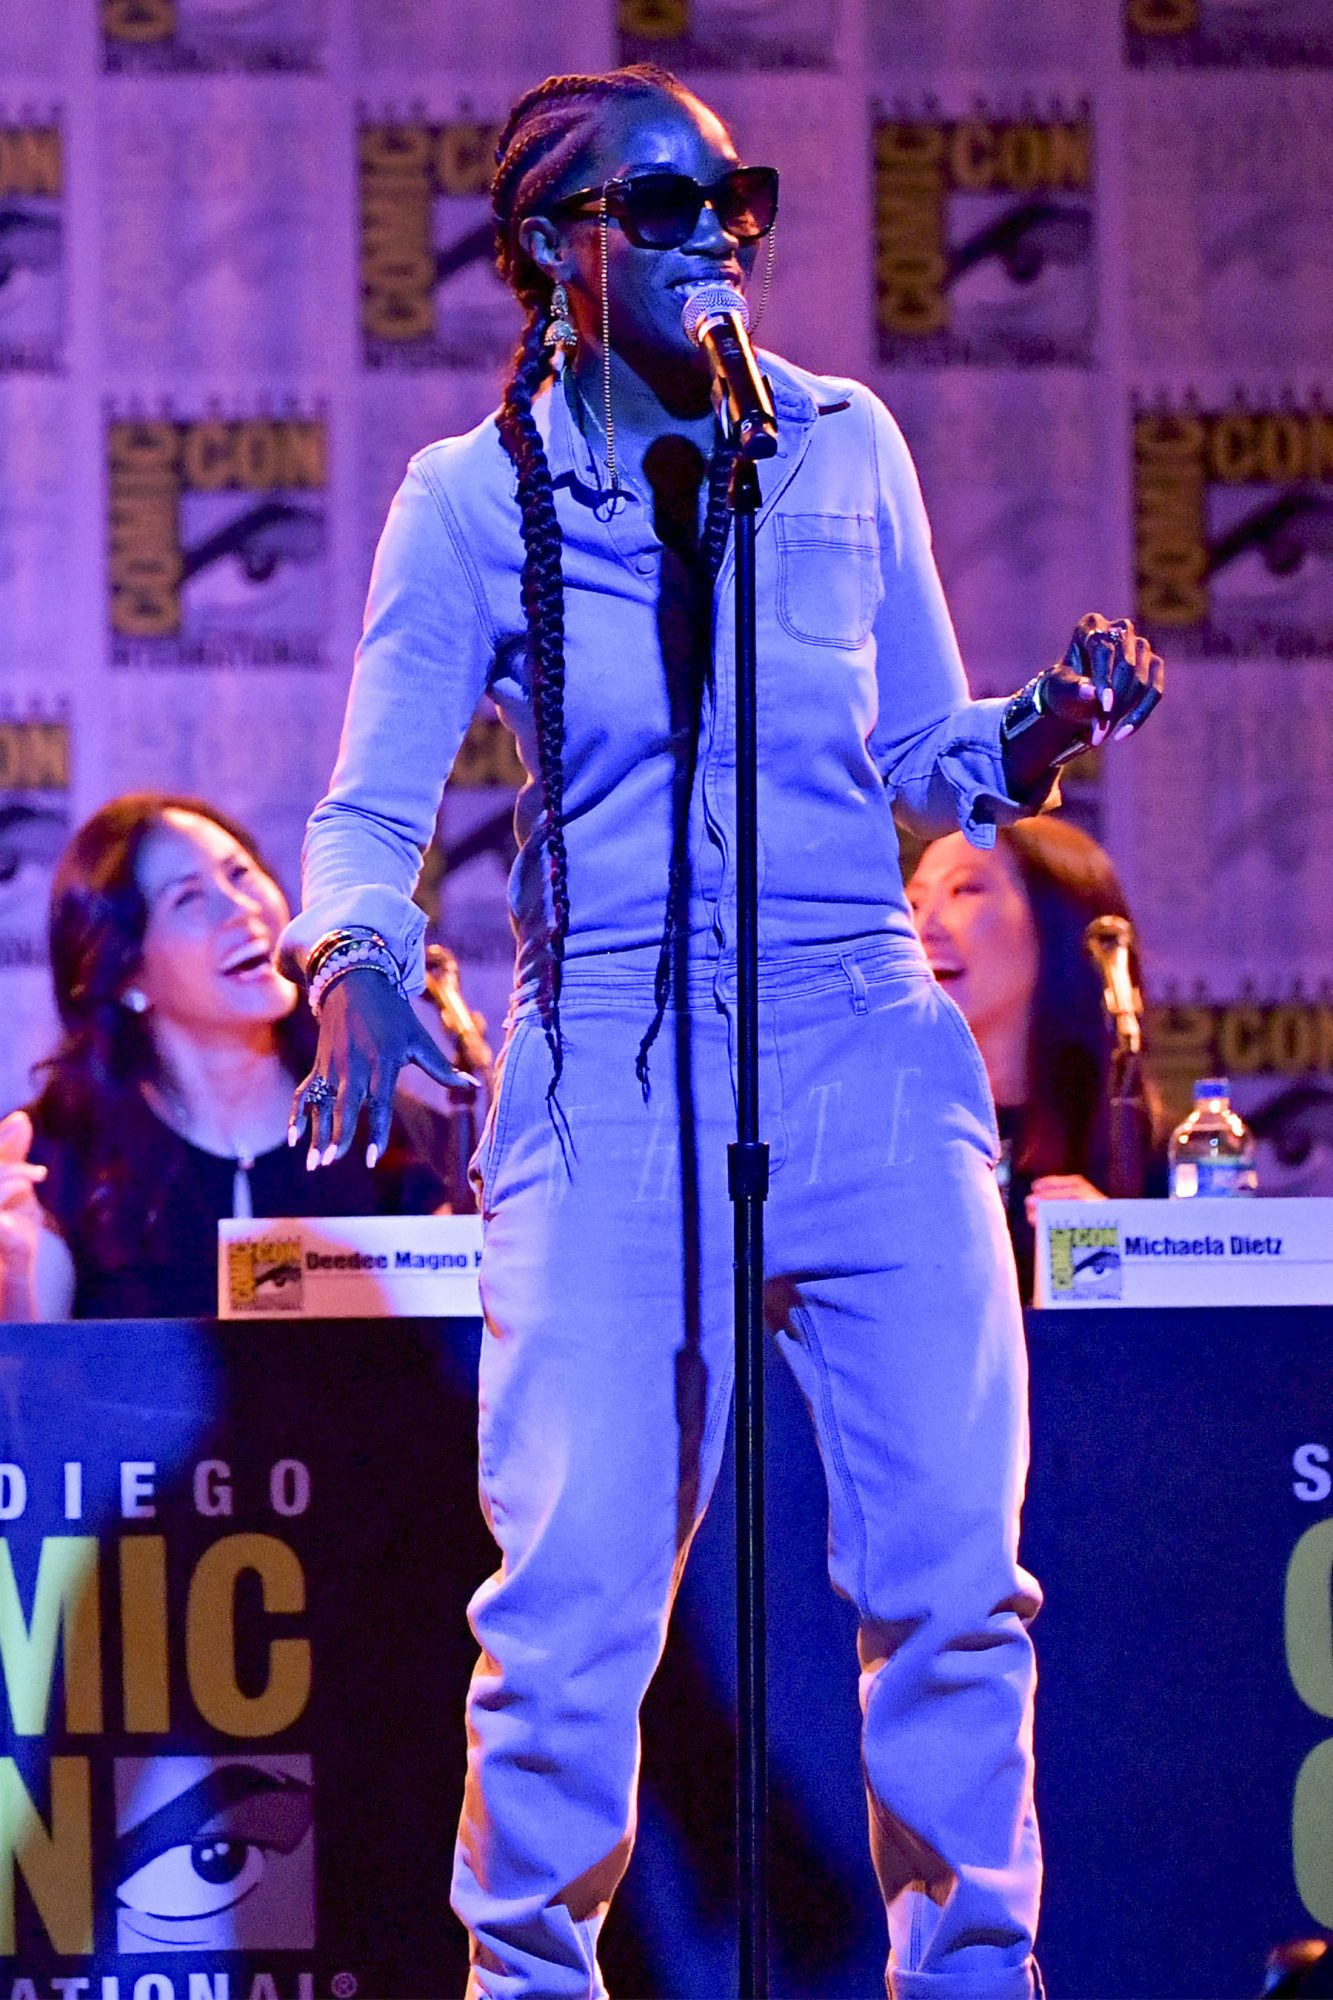 """SAN DIEGO, CALIFORNIA - JULY 19: Rebecca Sugar and Estelle speak at the """"Steven Universe"""" Panel during 2019 Comic-Con International at San Diego Convention Center on July 19, 2019 in San Diego, California. (Photo by Amy Sussman/Getty Images)"""